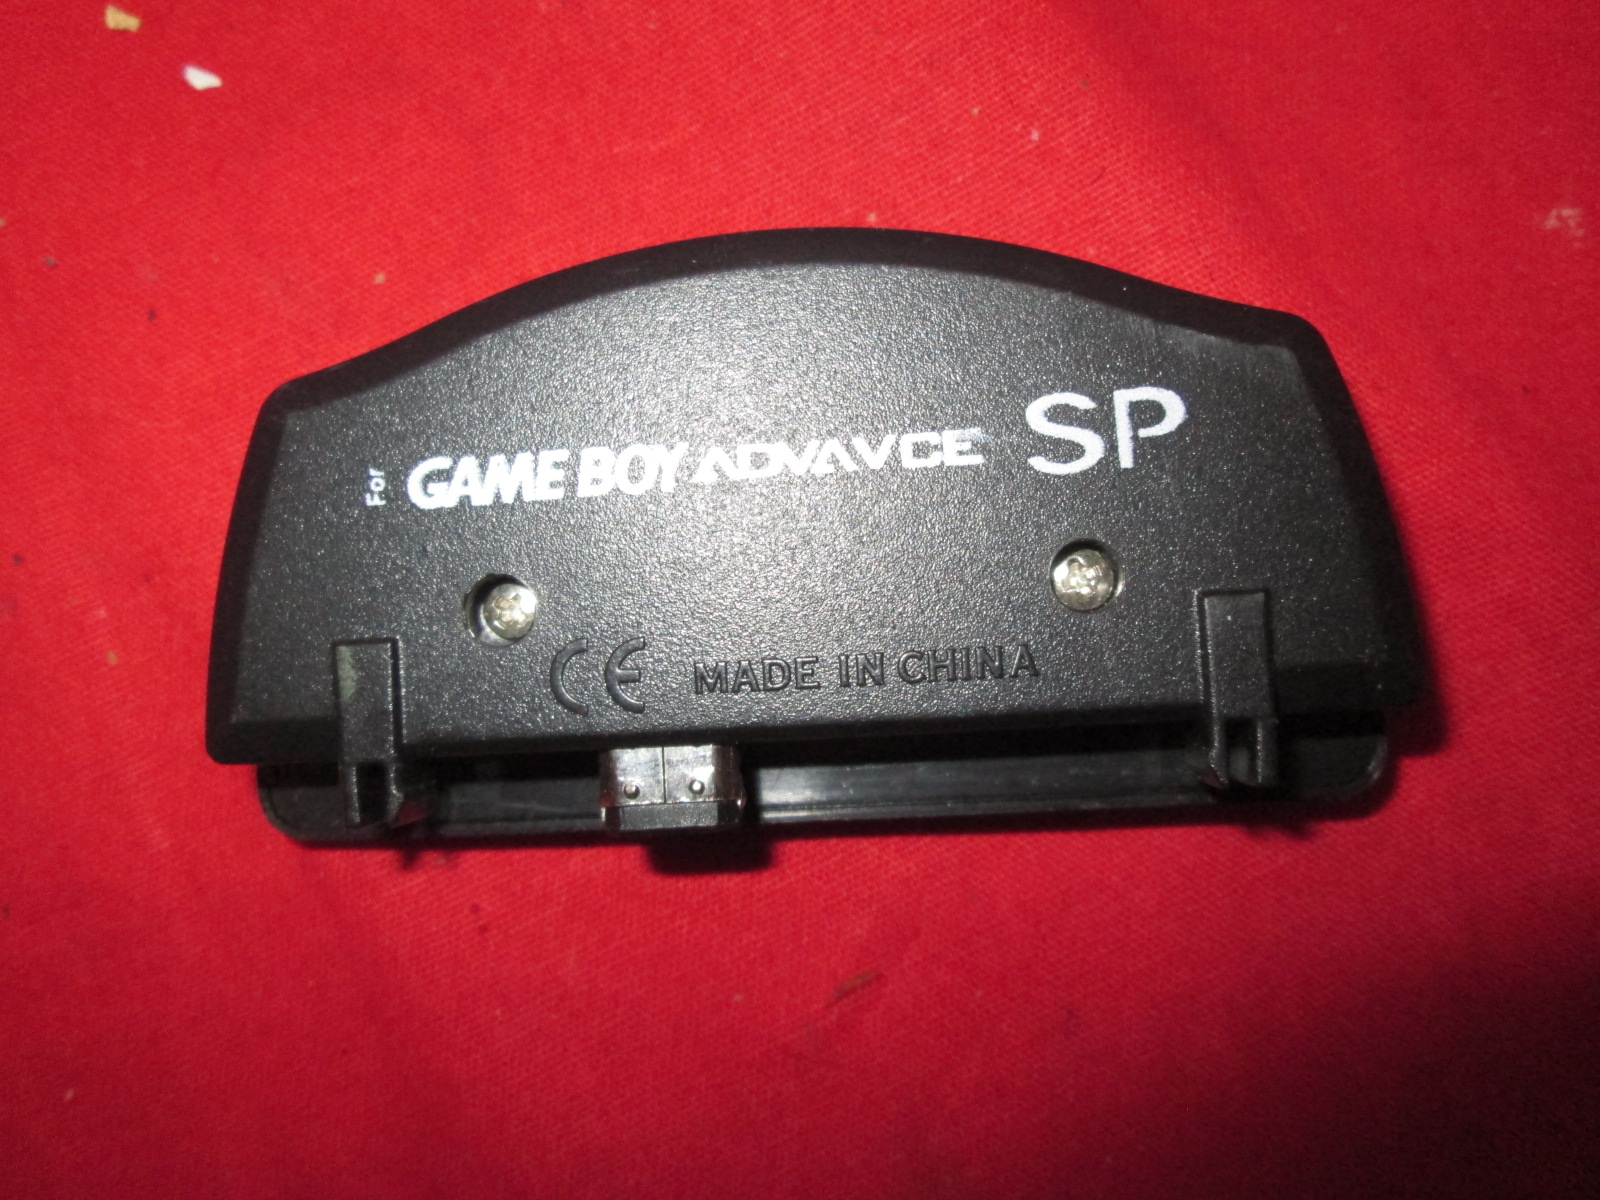 Game Boy Advance Adapter For GBA Gameboy Advance